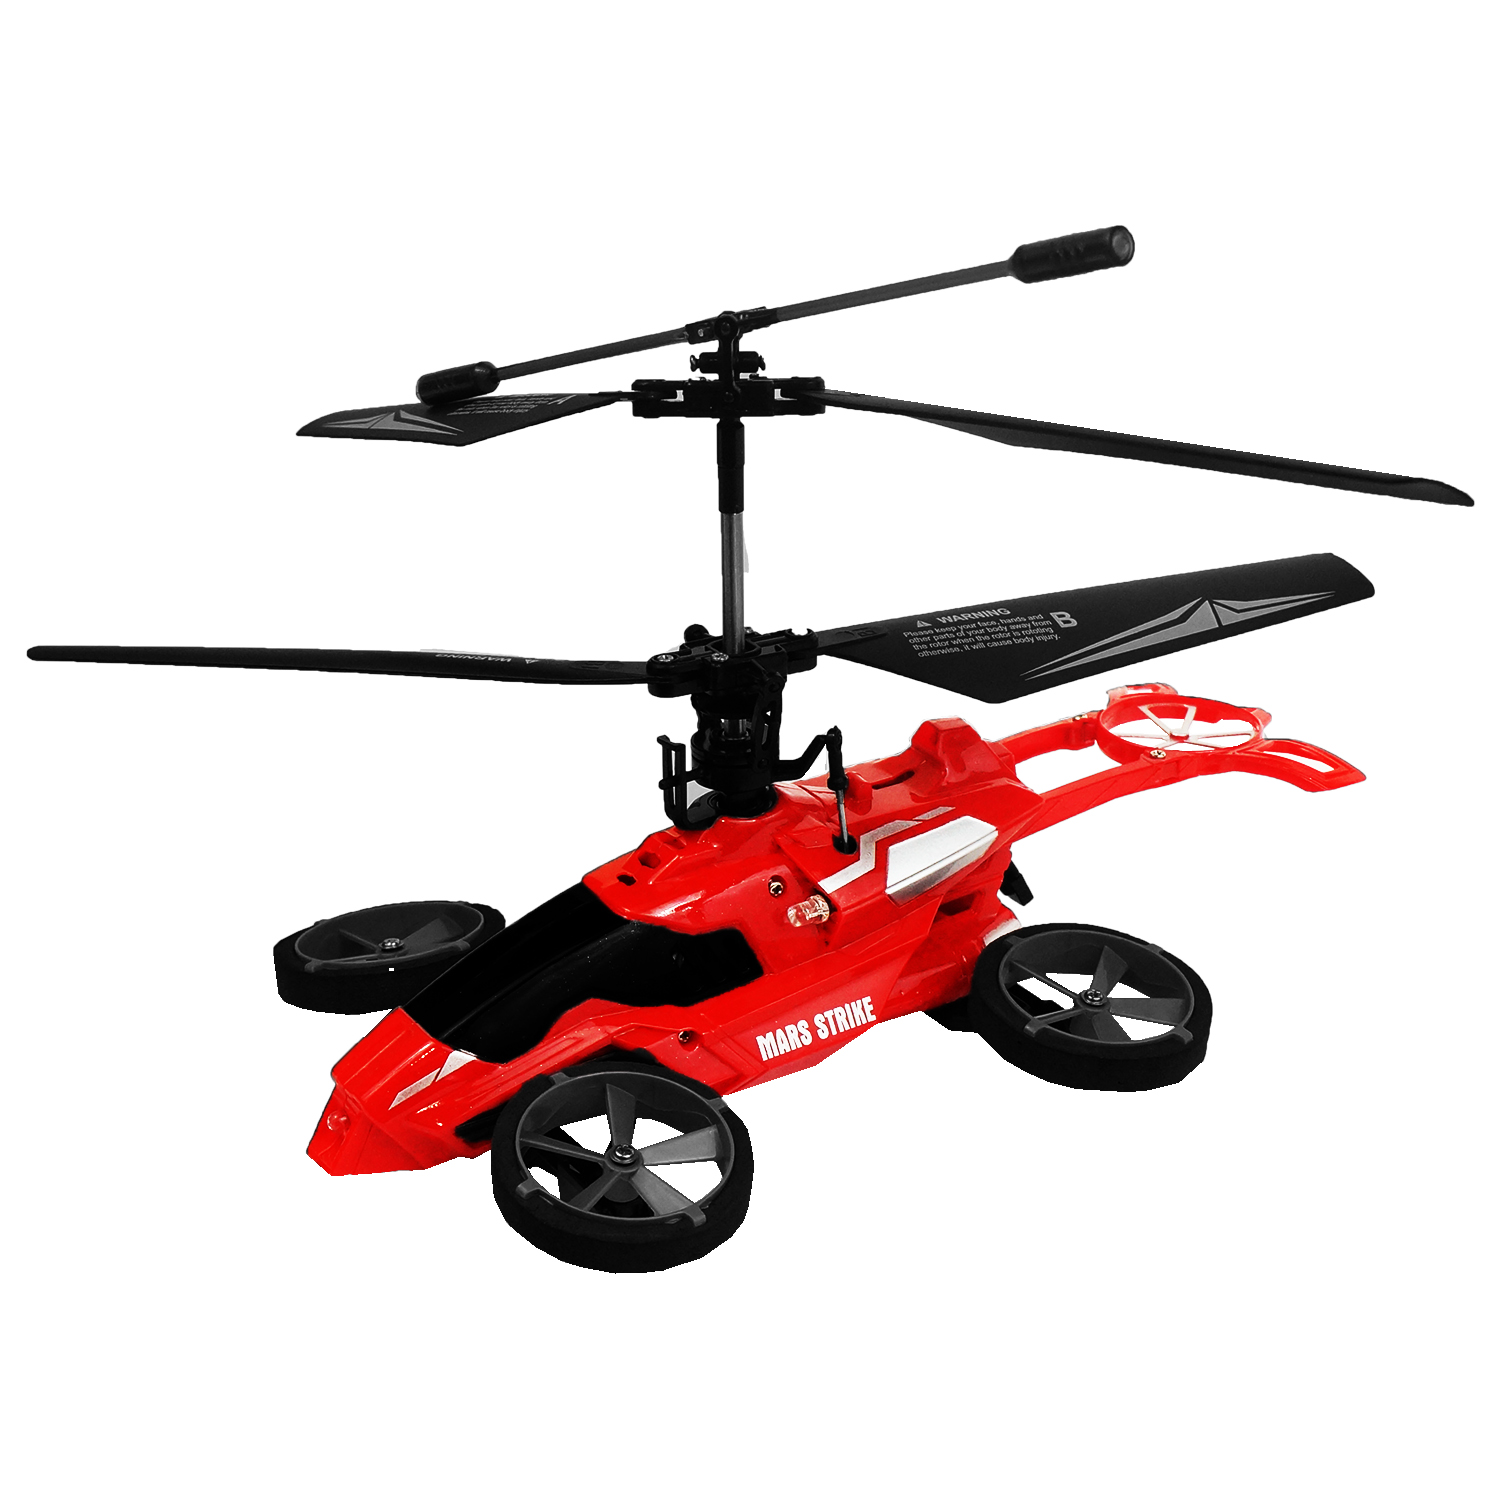 AWW Industries Mars Strike Radio Control 3.5 Channel RC Transforming Helicopter